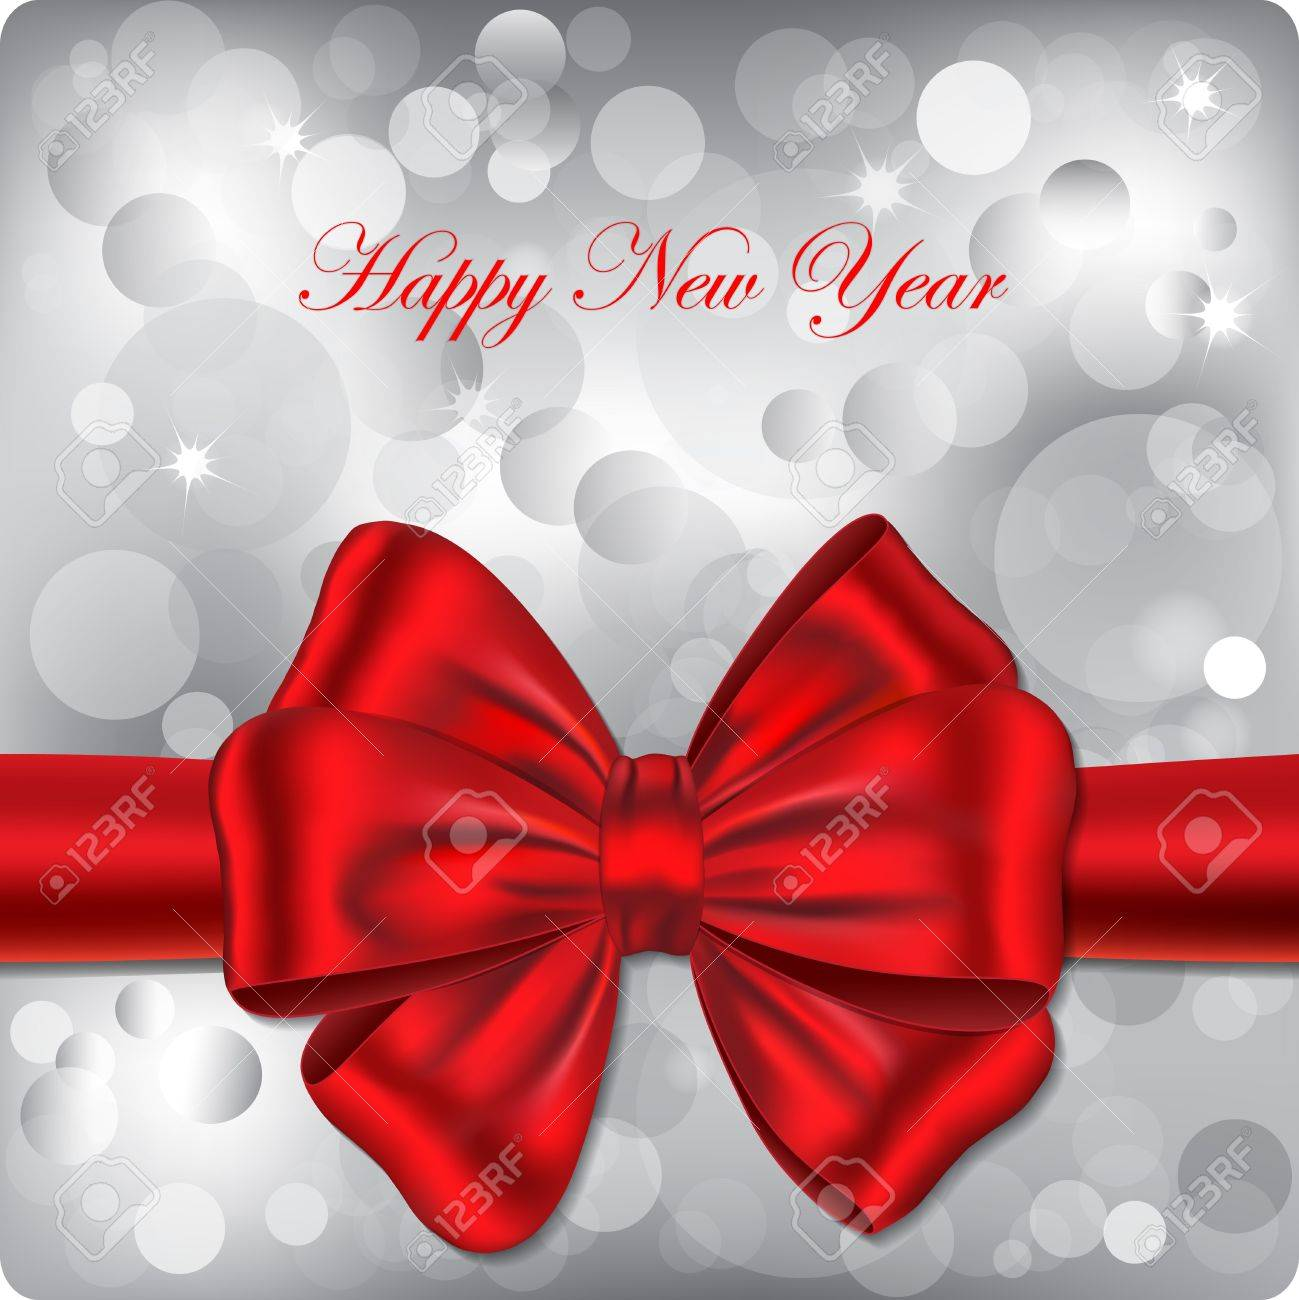 happy new year backgound with red ribbon gift card illustration stock vector 12367949